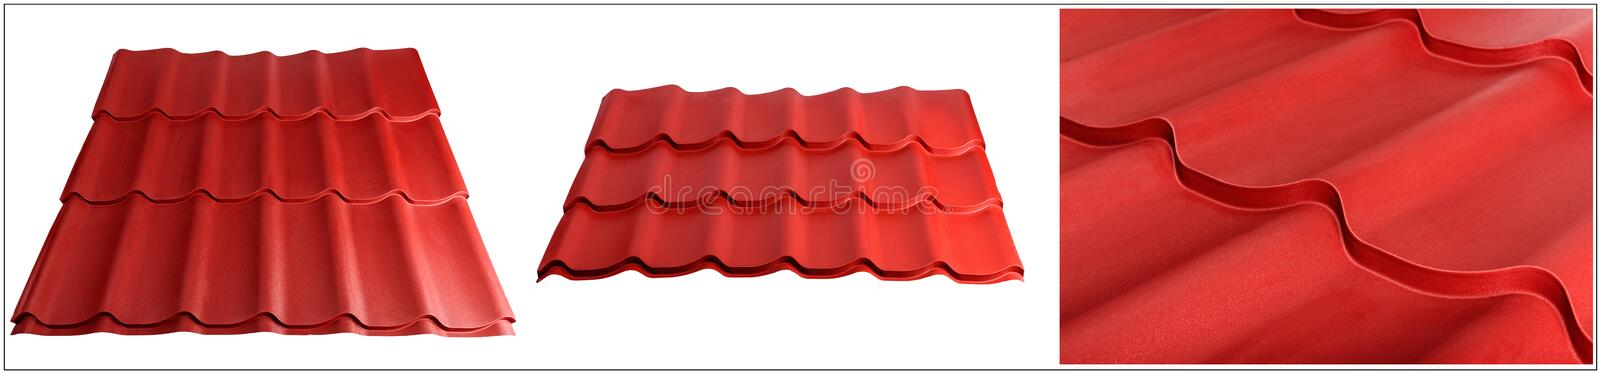 Metal tile, modern material for the roof of houses. The set is made specifically for specialized Internet sites stock photo